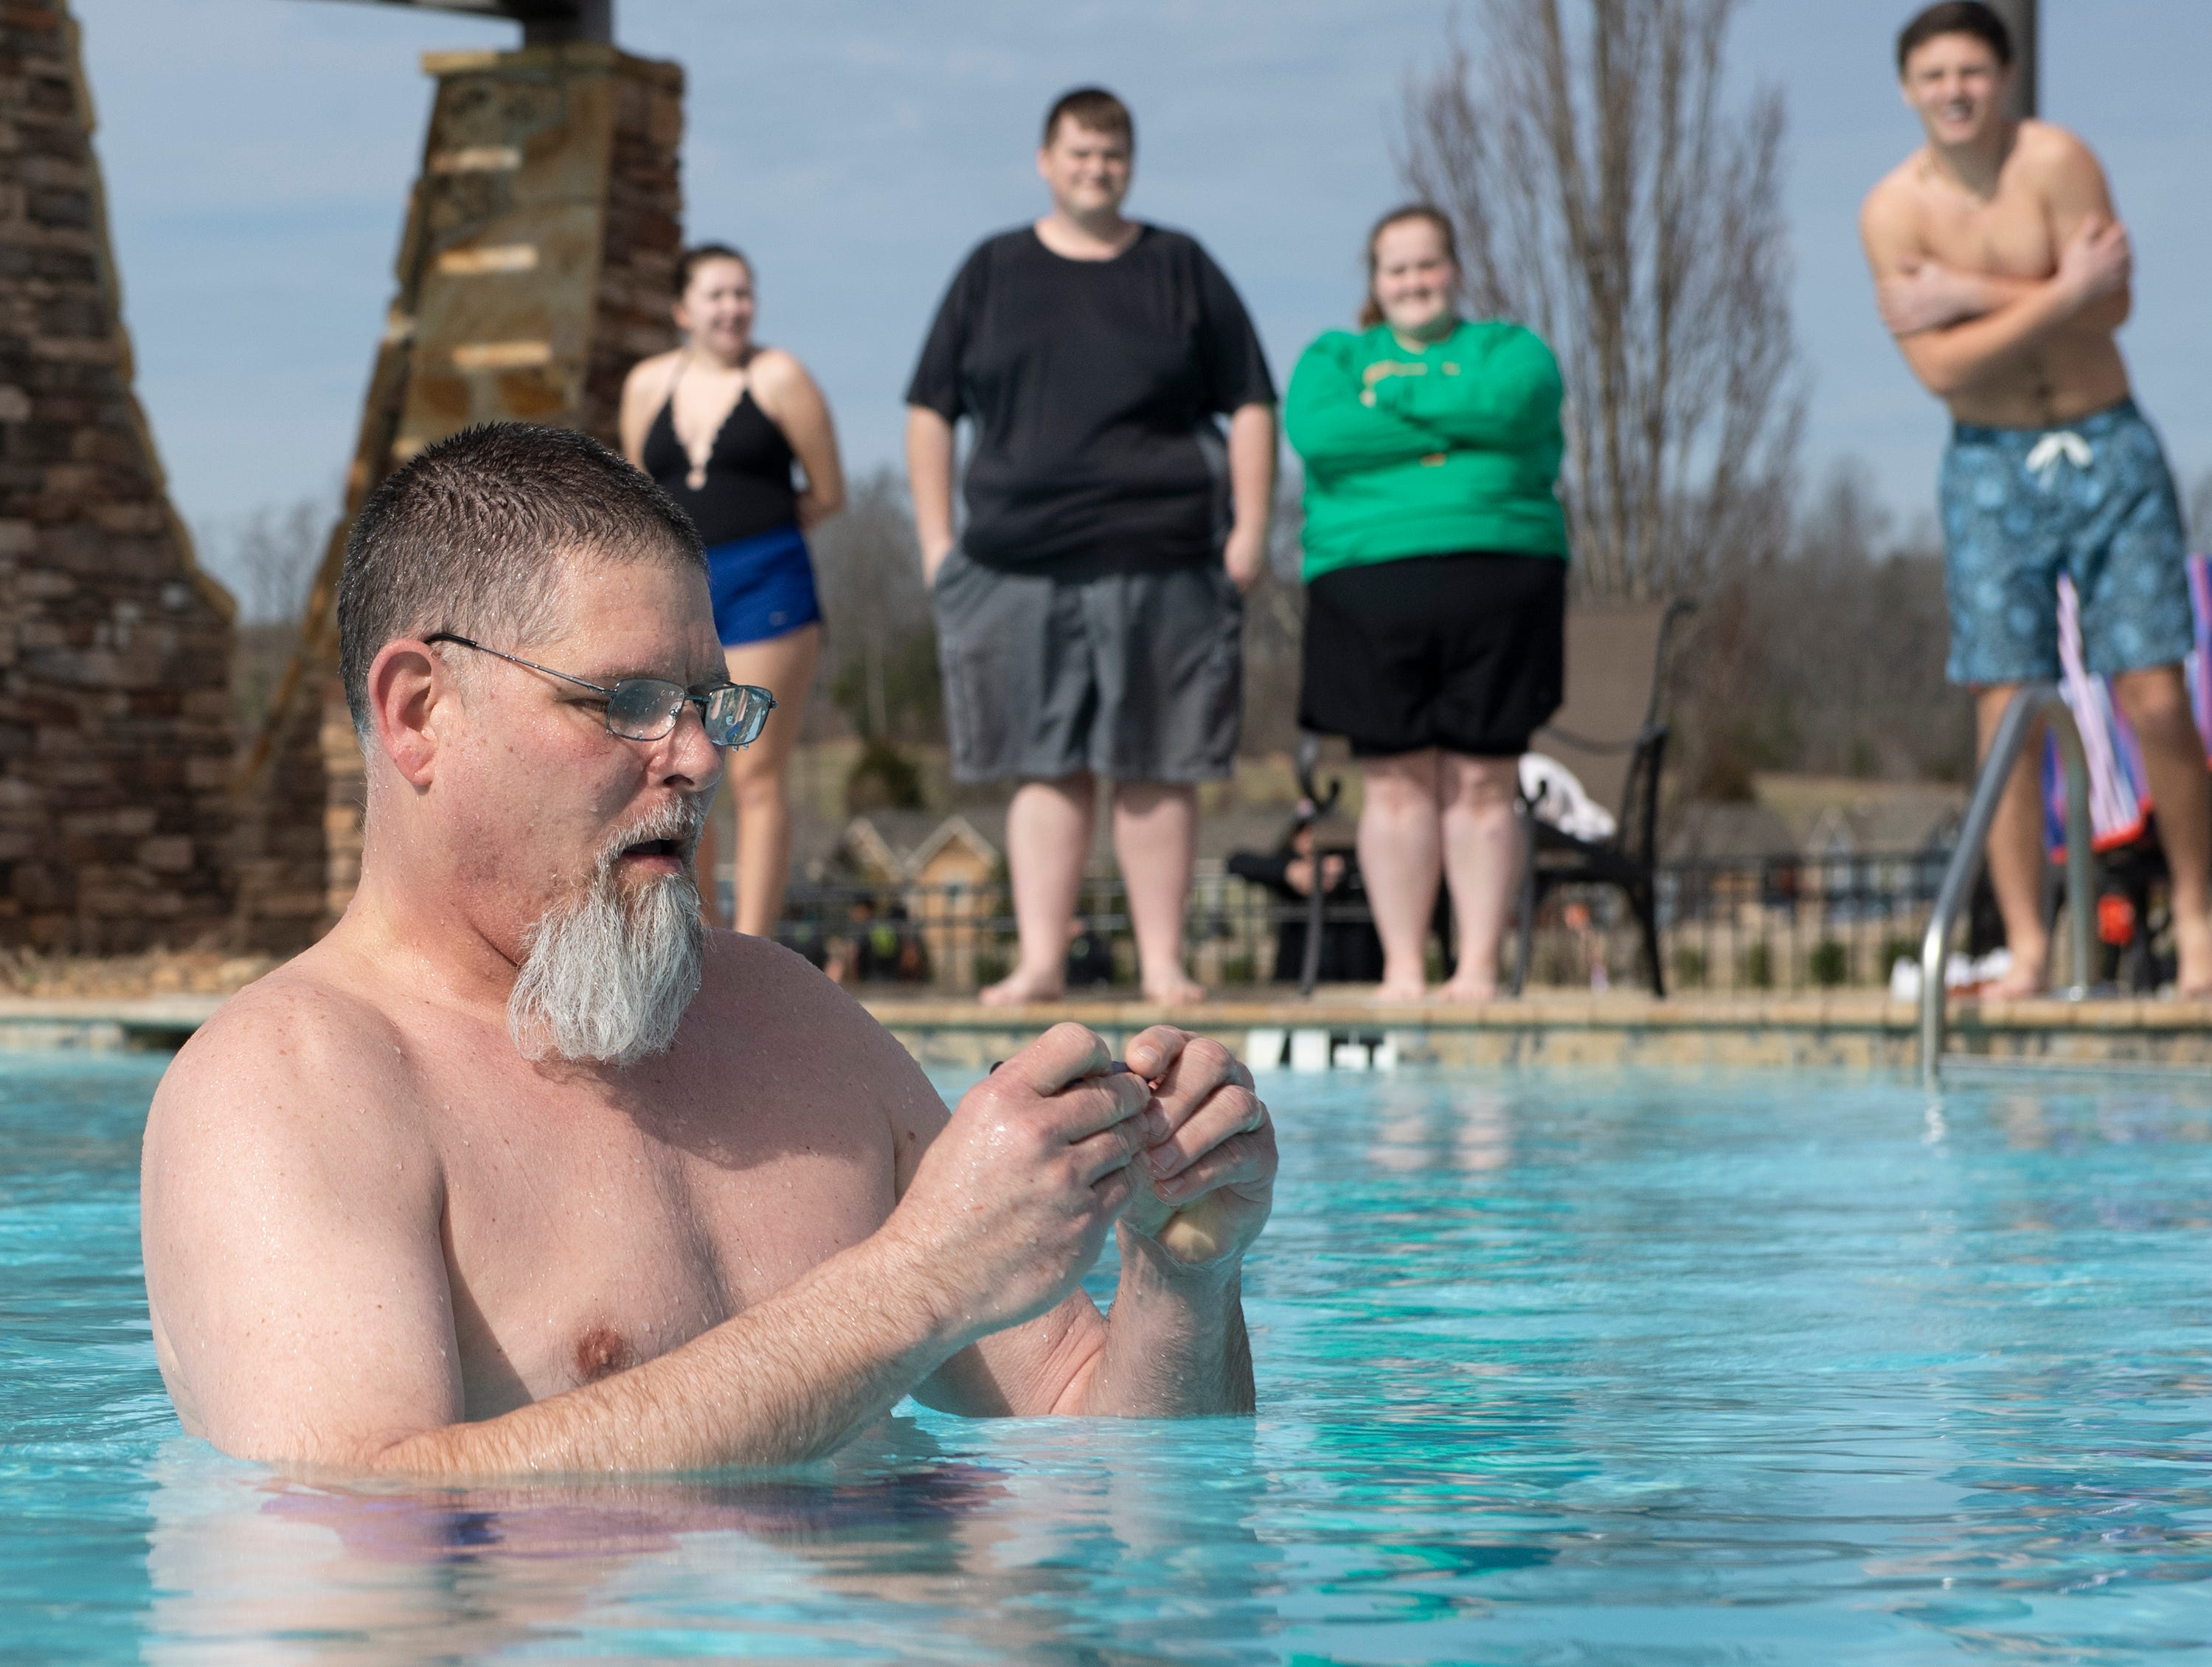 Shane Winslow checks the pool temperature before polar plungers enter the water for the 2019 Tiger Paw Polar Plunge at in the pool at The Pier housing complex in Seneca Saturday, Feb. 9, 2019. He read that the water was 58 degrees.